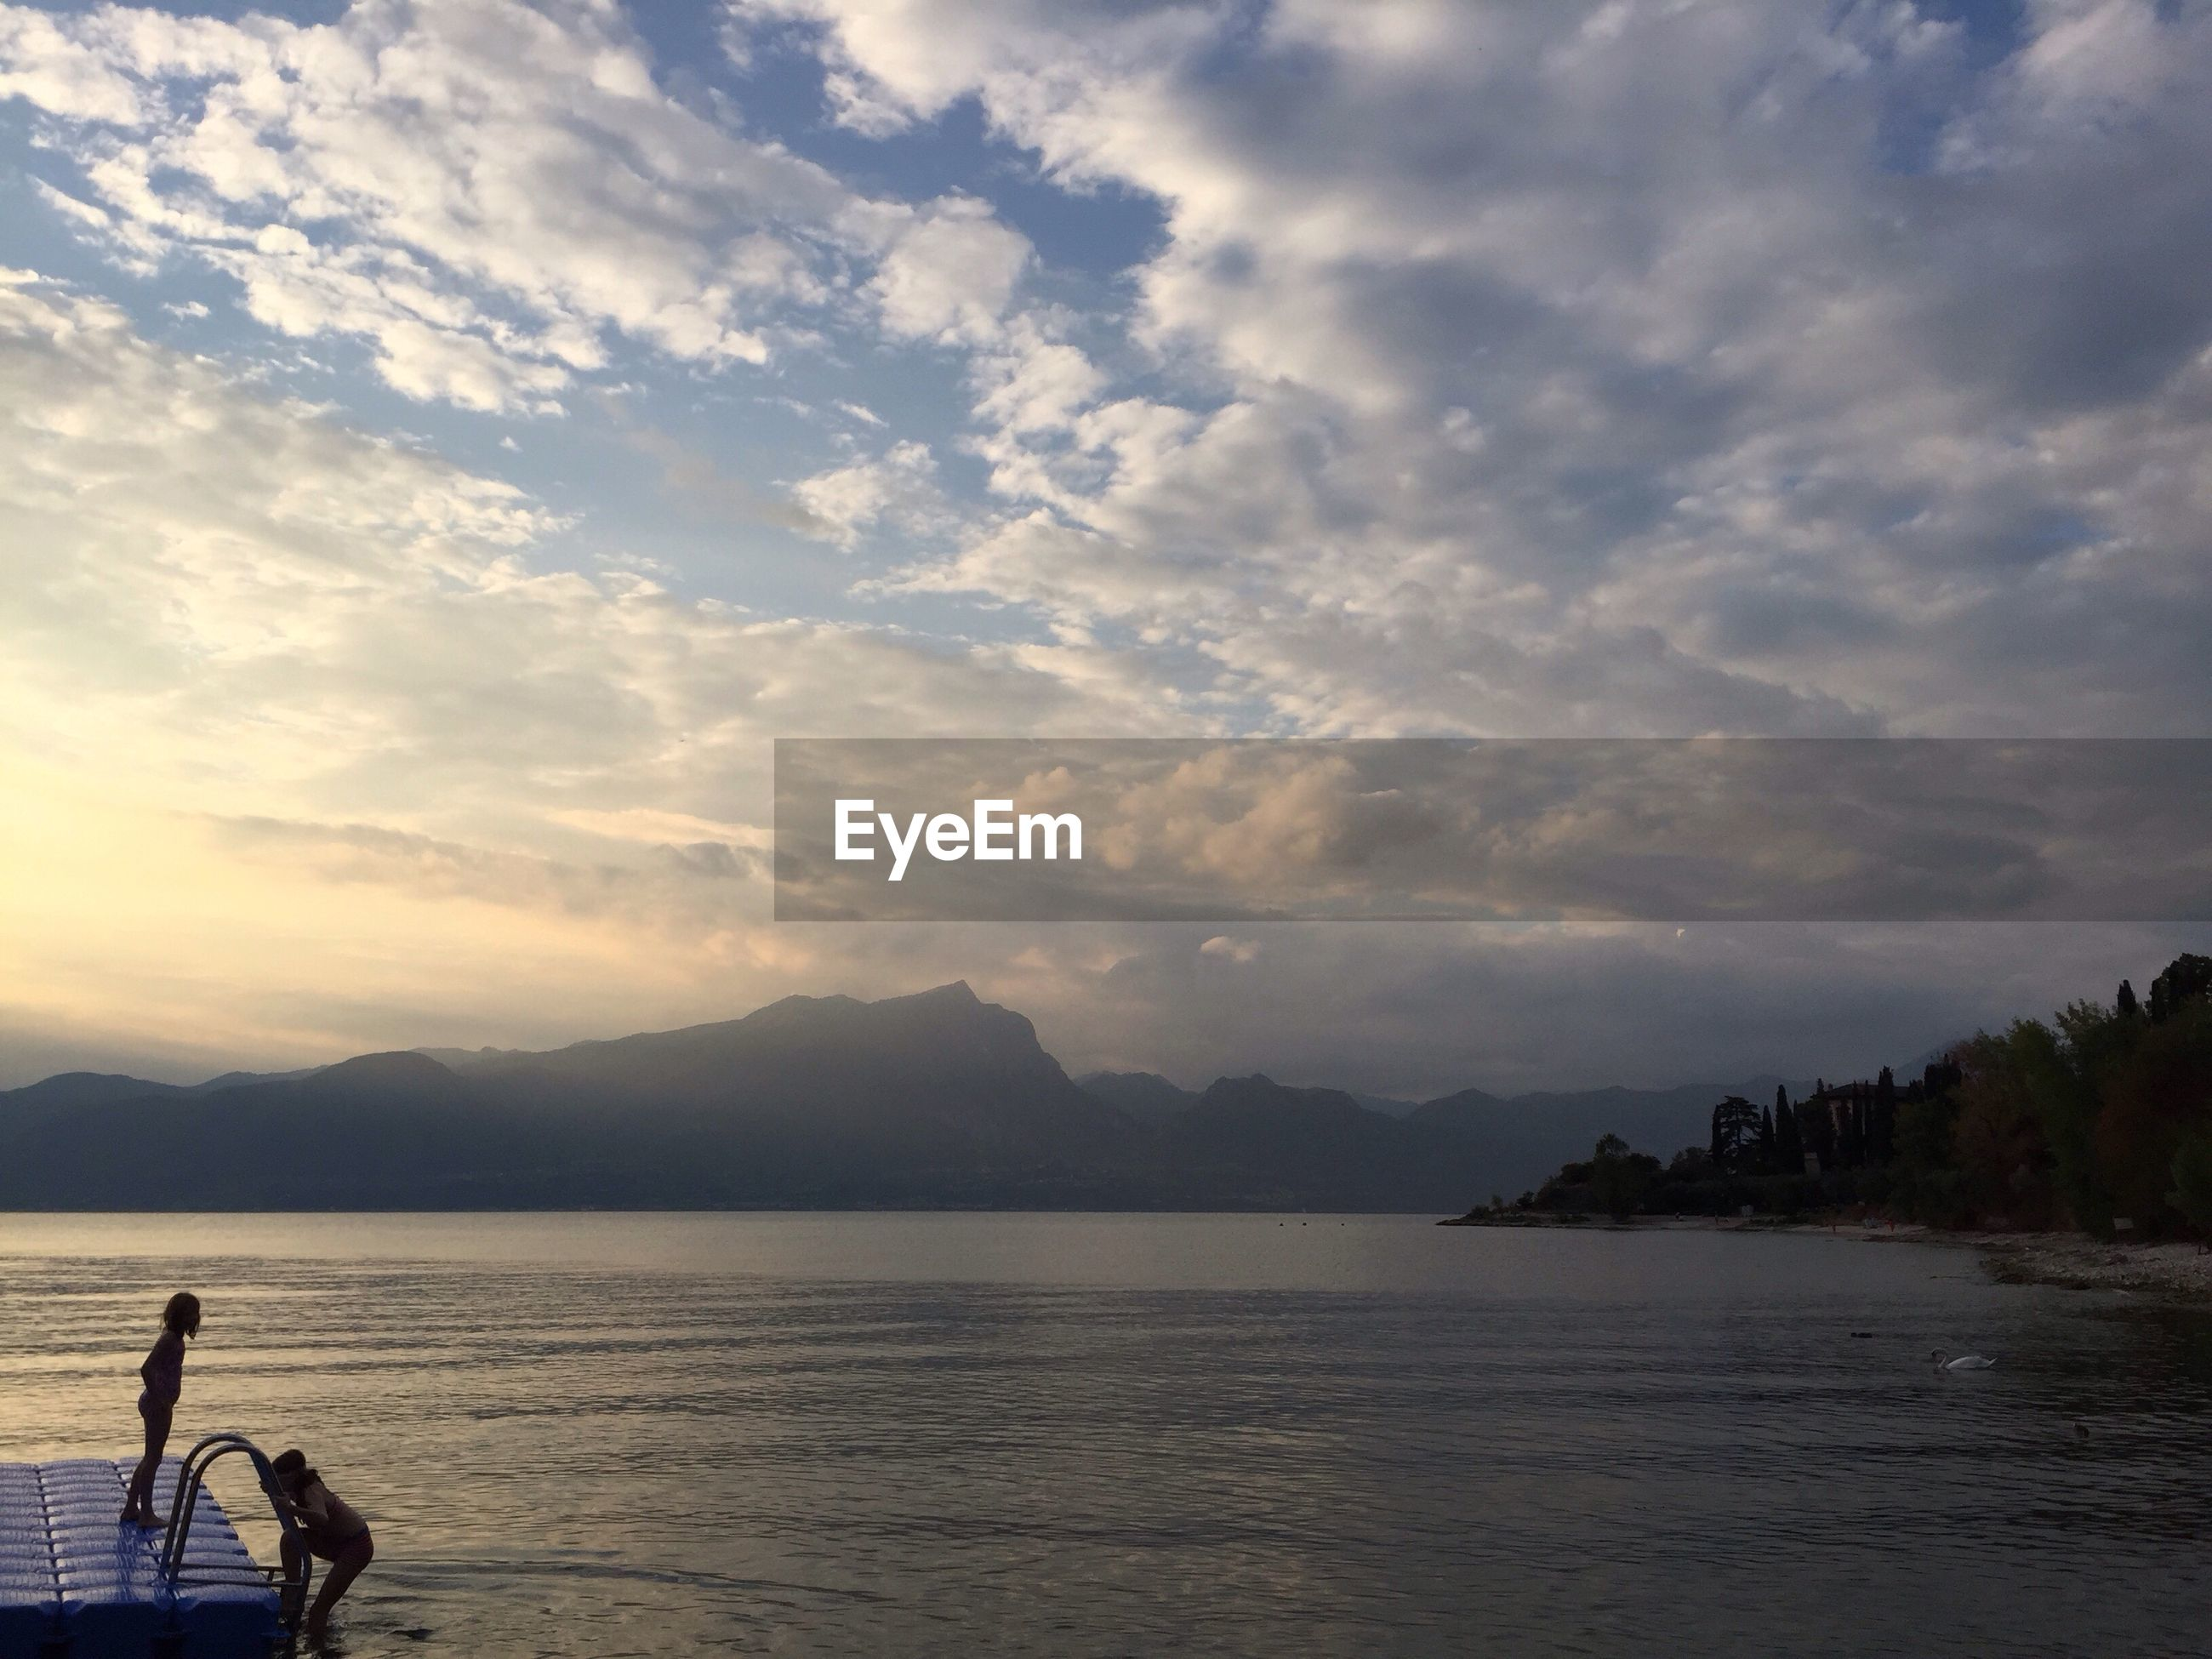 SCENIC VIEW OF SEA WITH MOUNTAIN IN BACKGROUND